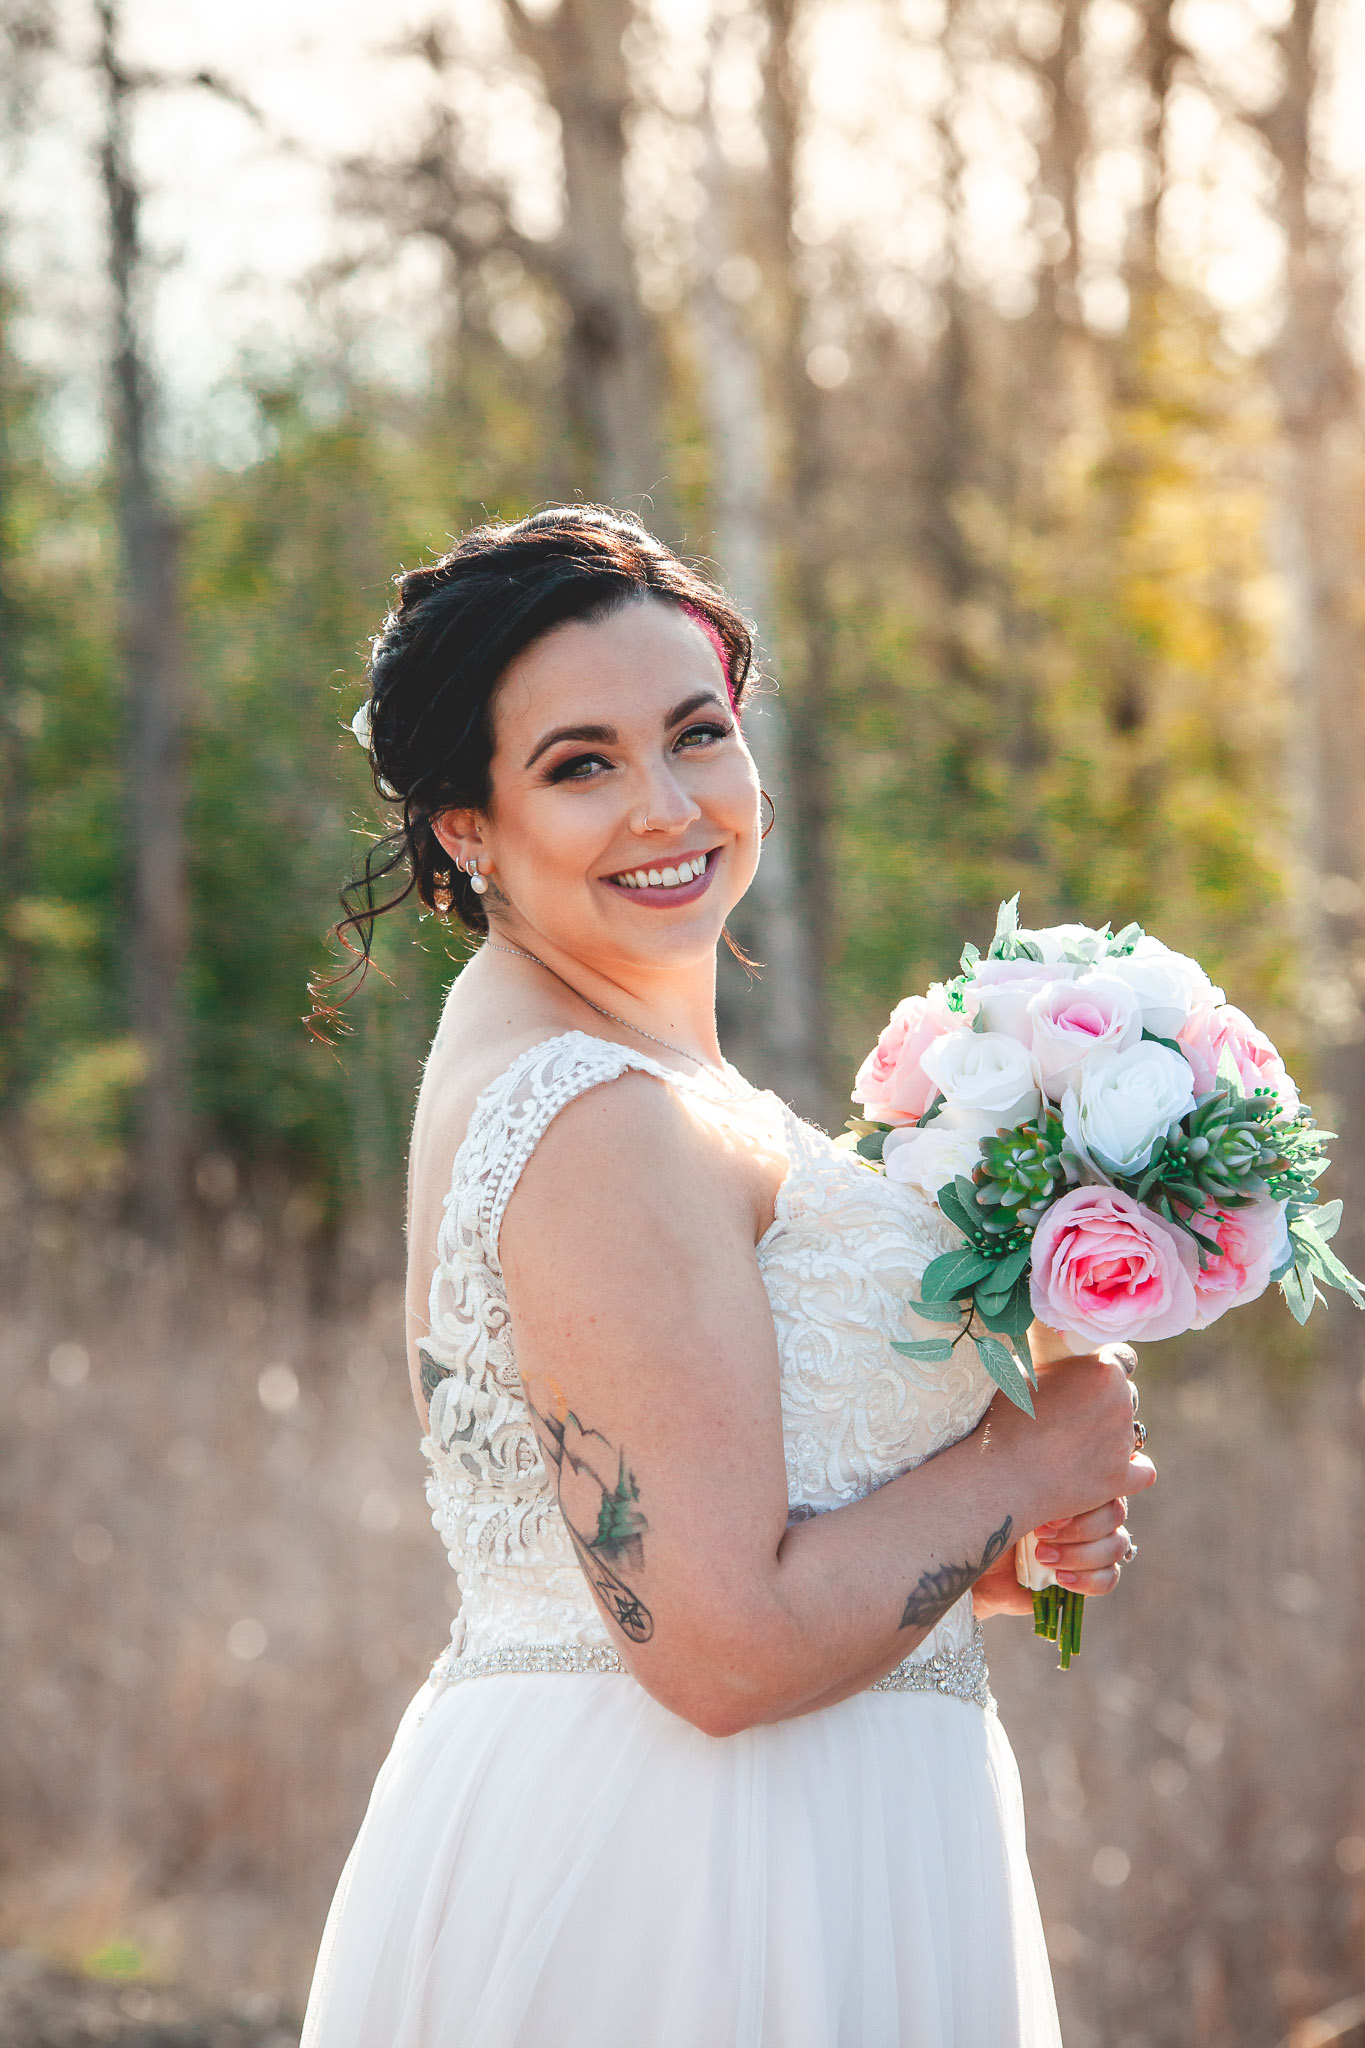 Amy D Photography- Bride and Groom-Barrie Wedding Photography Muskoka Wedding Photography Bride and Groom Poses Bride and Groom Train Tracks Snow Valley Wedding-23.jpg